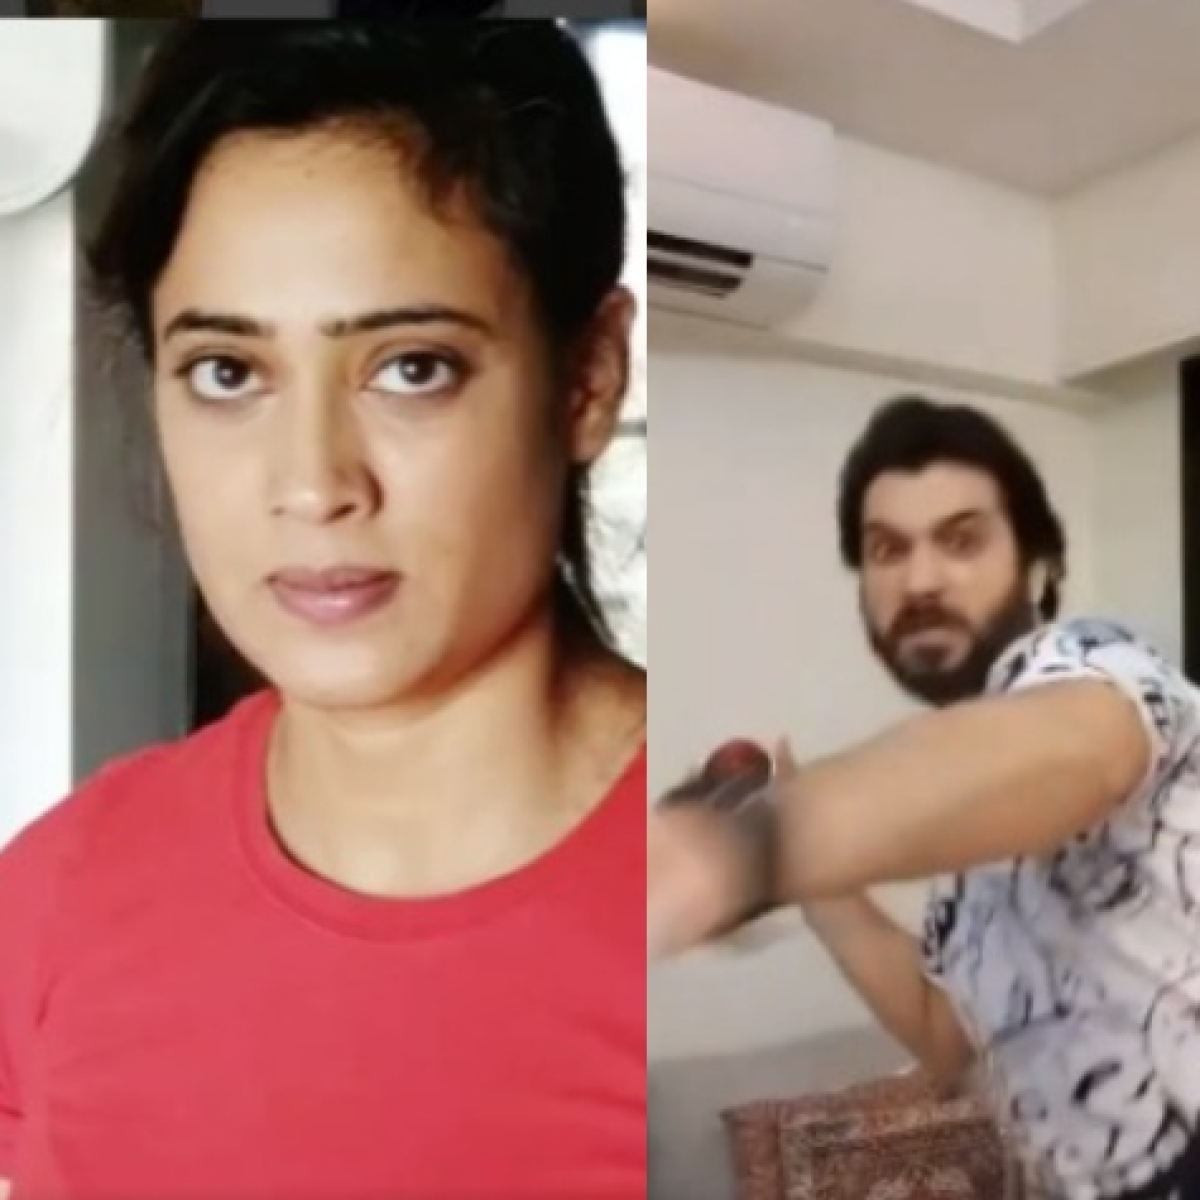 Hit Me Challenge: TV actors accused of promoting domestic violence amid lockdown